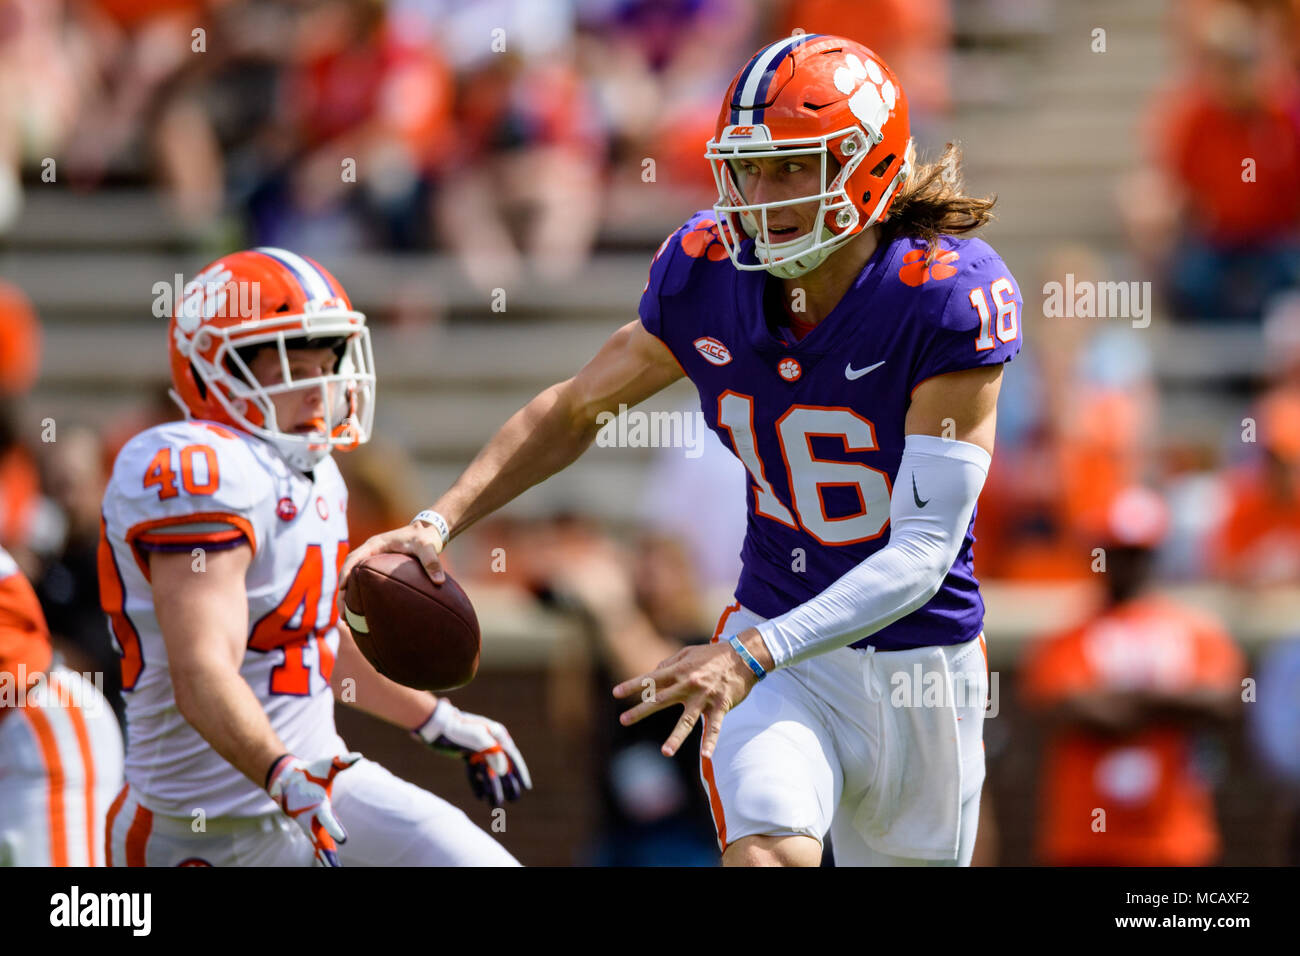 Clemson Qb Trevor Lawrence 16 During The Clemson Football